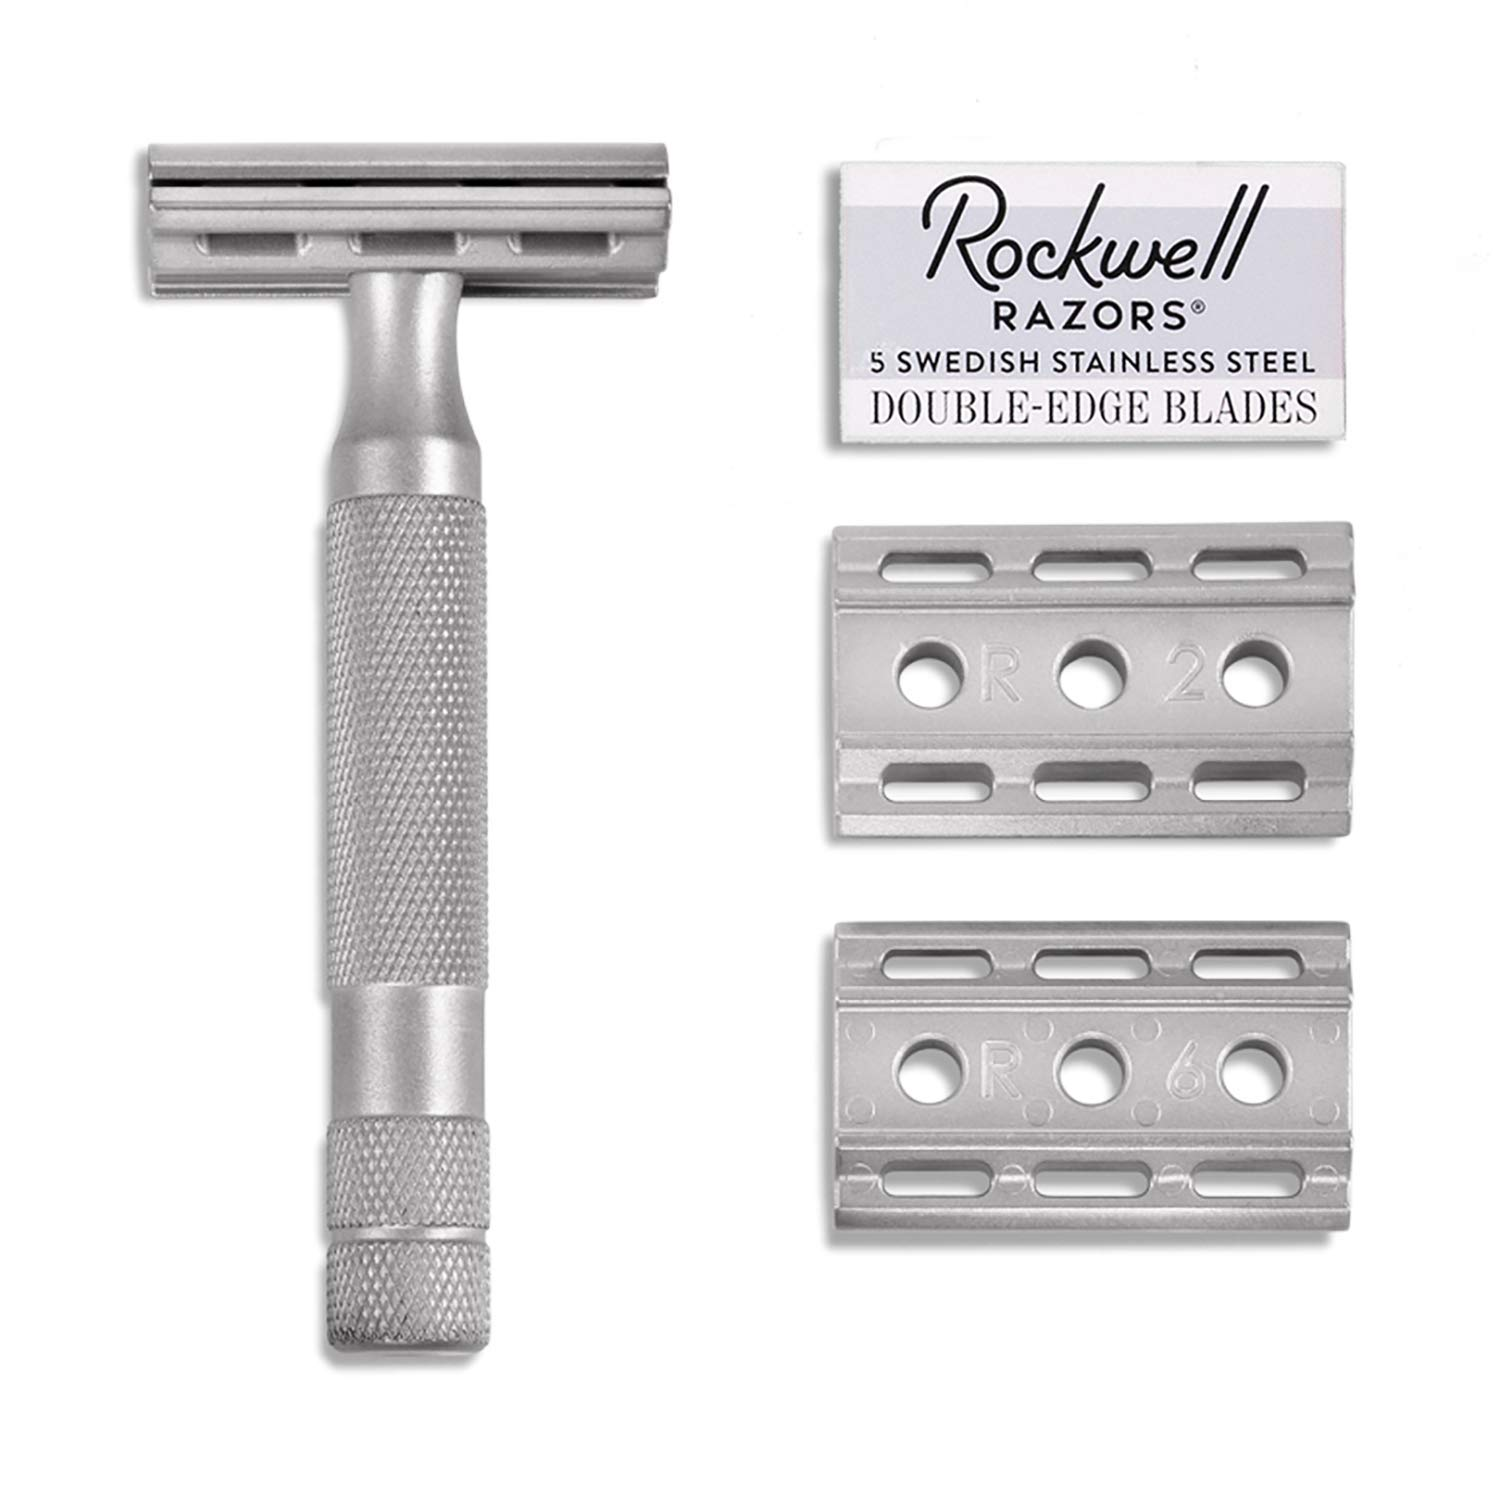 Rockwell Razors 6S Stainless Steel Adjustable Double Edge Safety Razor + 5 Swedish Stainless Steel Razor Blades by ROCKWELL RAZORS